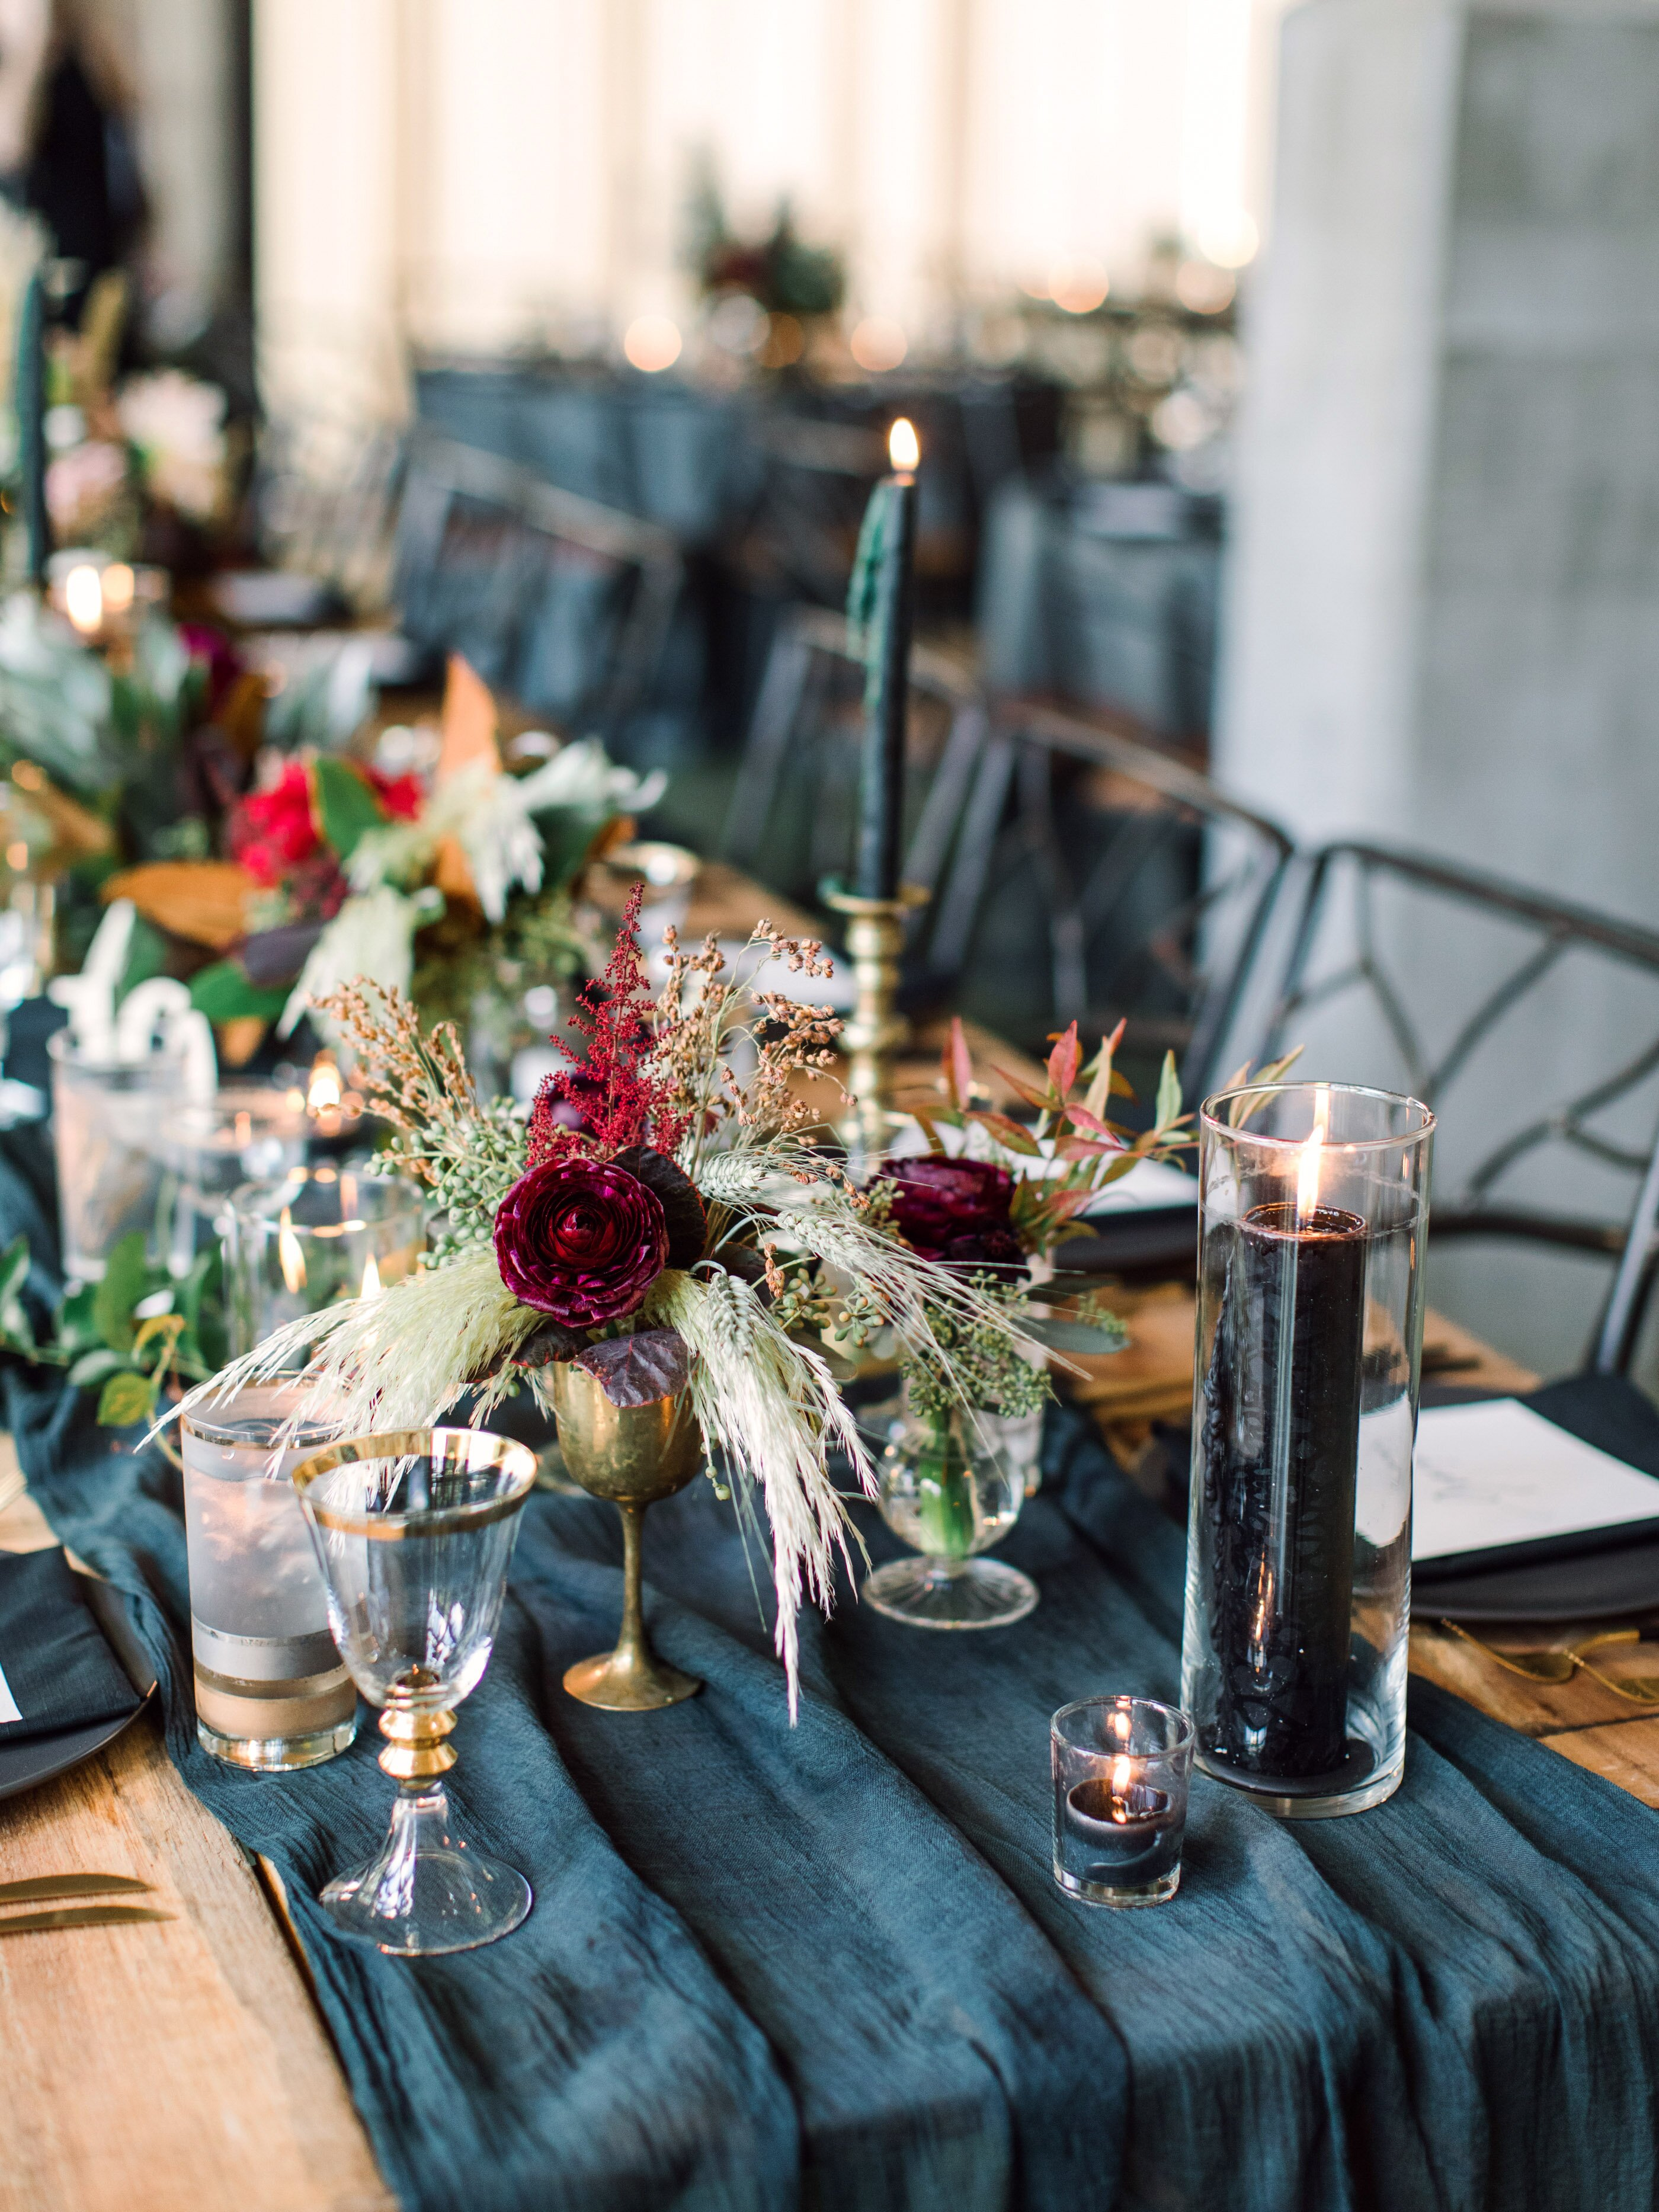 25 Jewel Toned Wedding Centerpieces Sure To Wow Your Guests